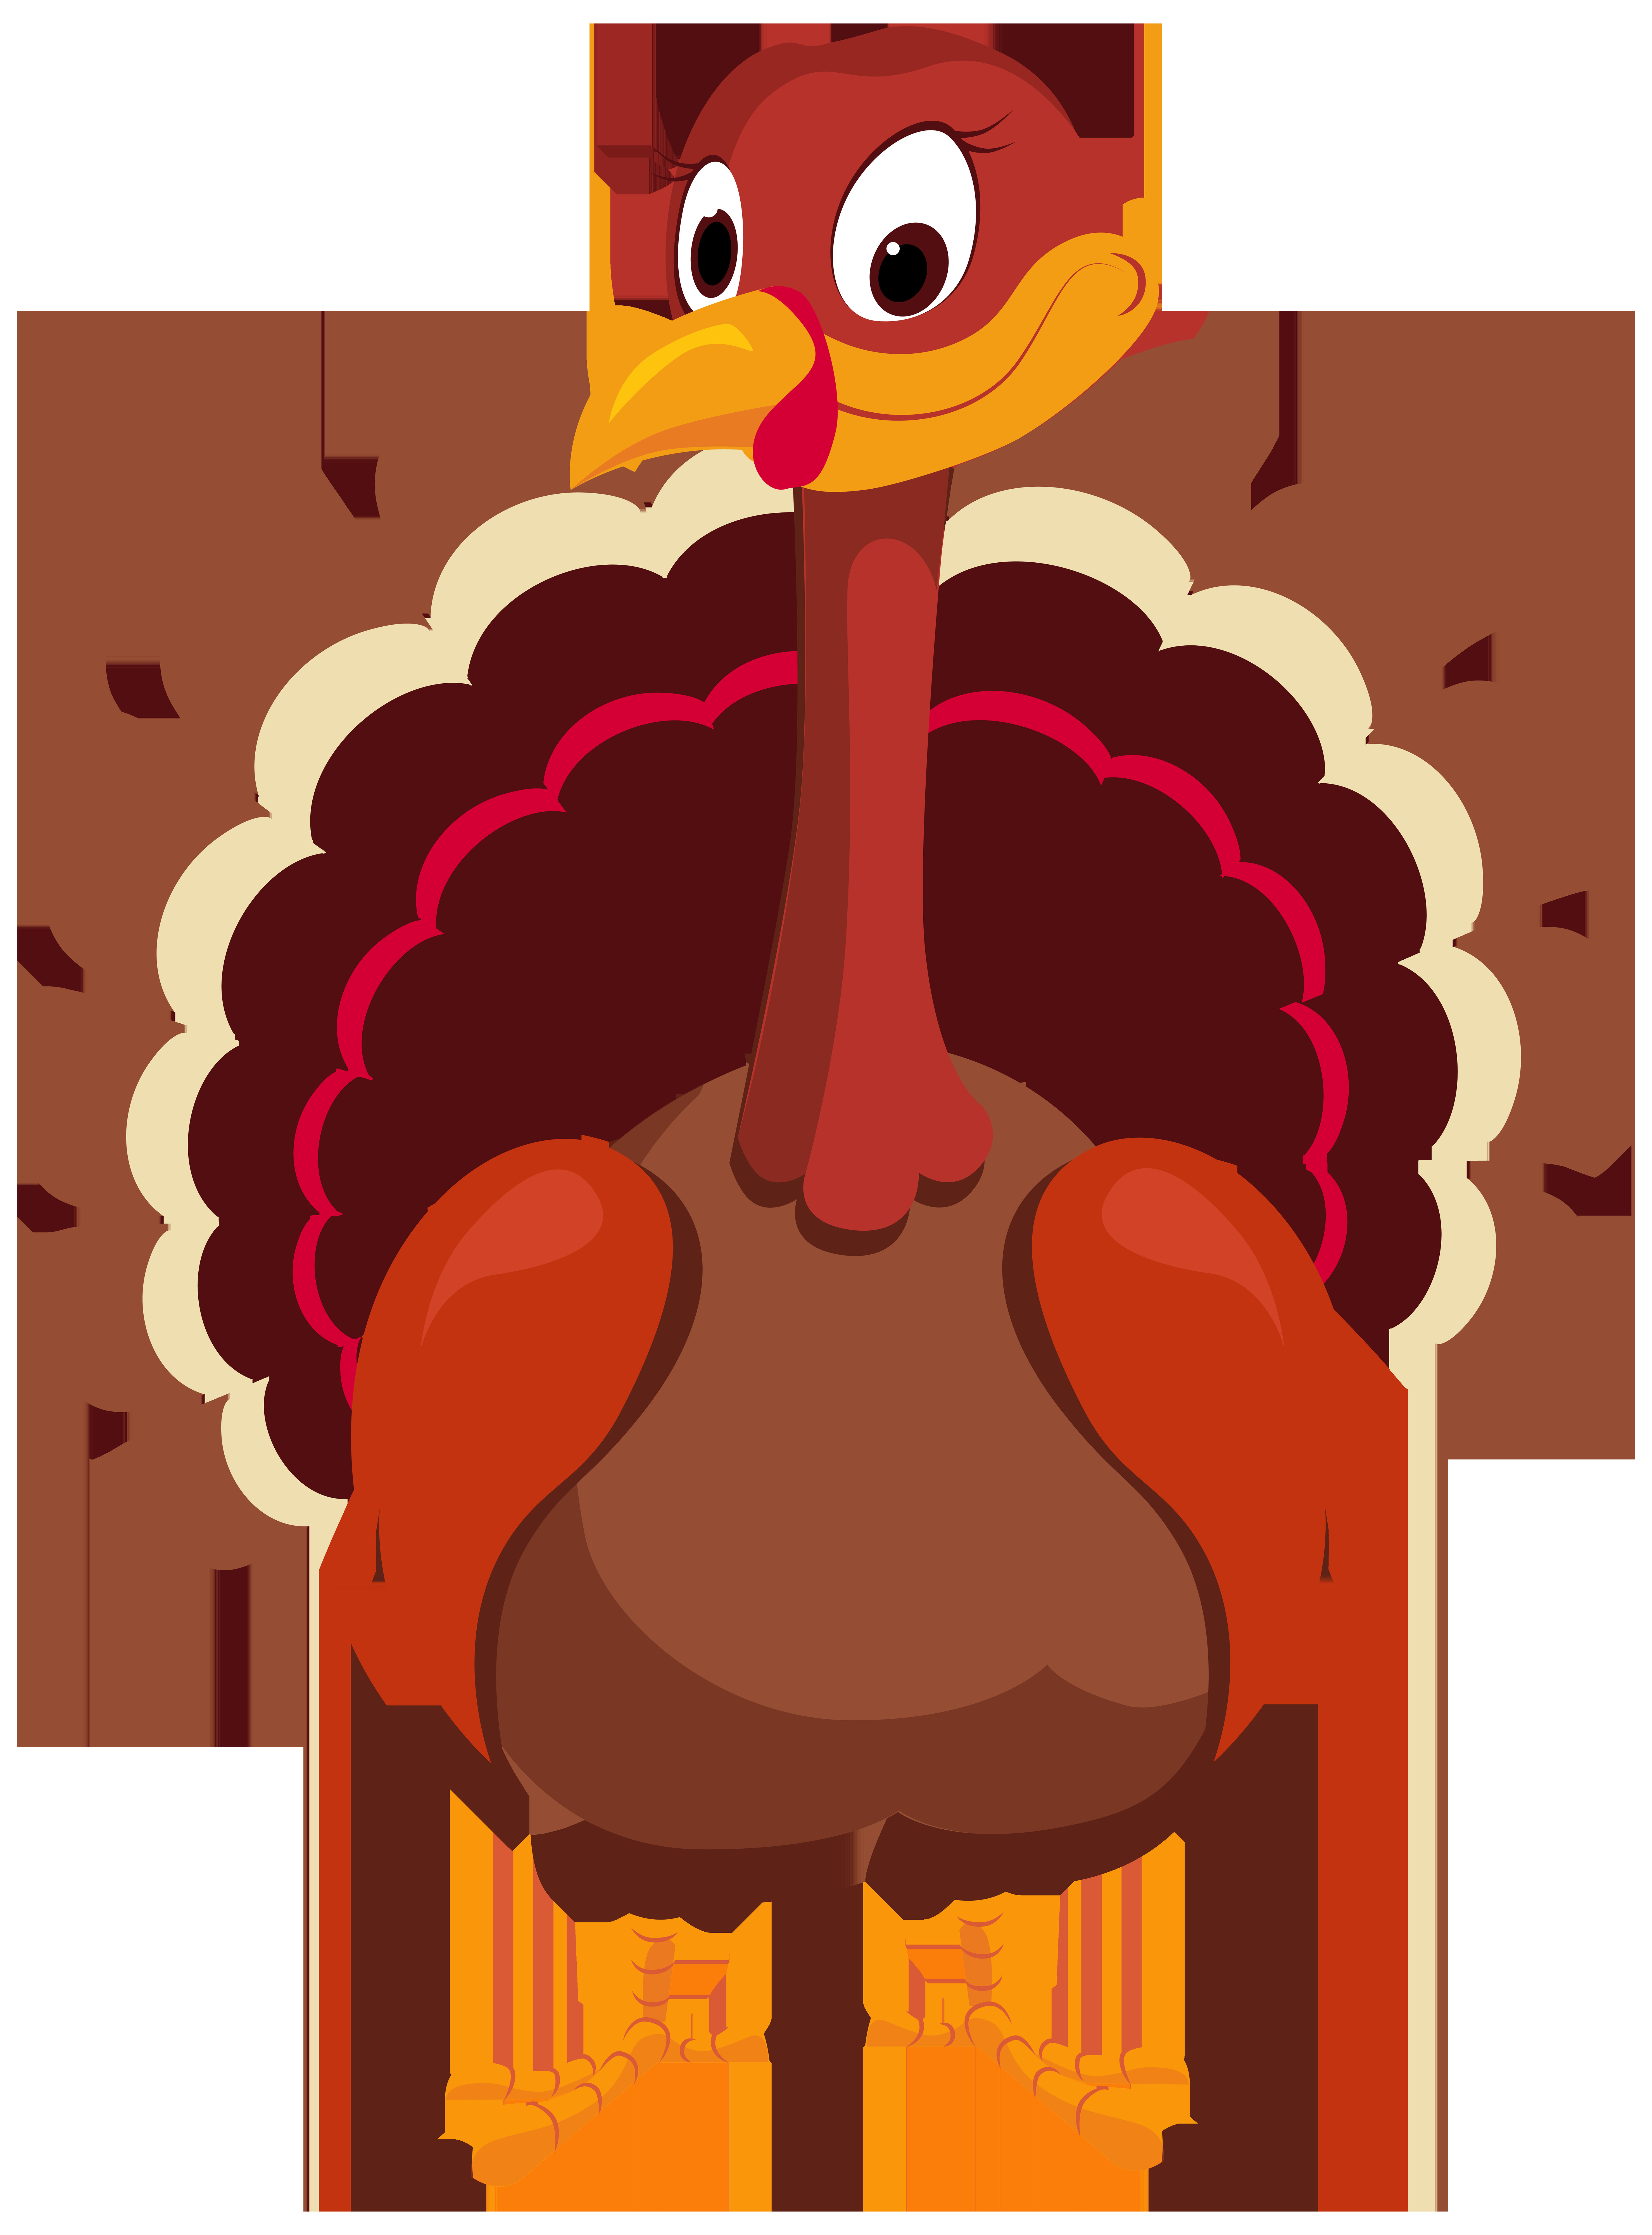 Thanksgiving Turkey Png  Turkey clipart png transparent Pencil and in color